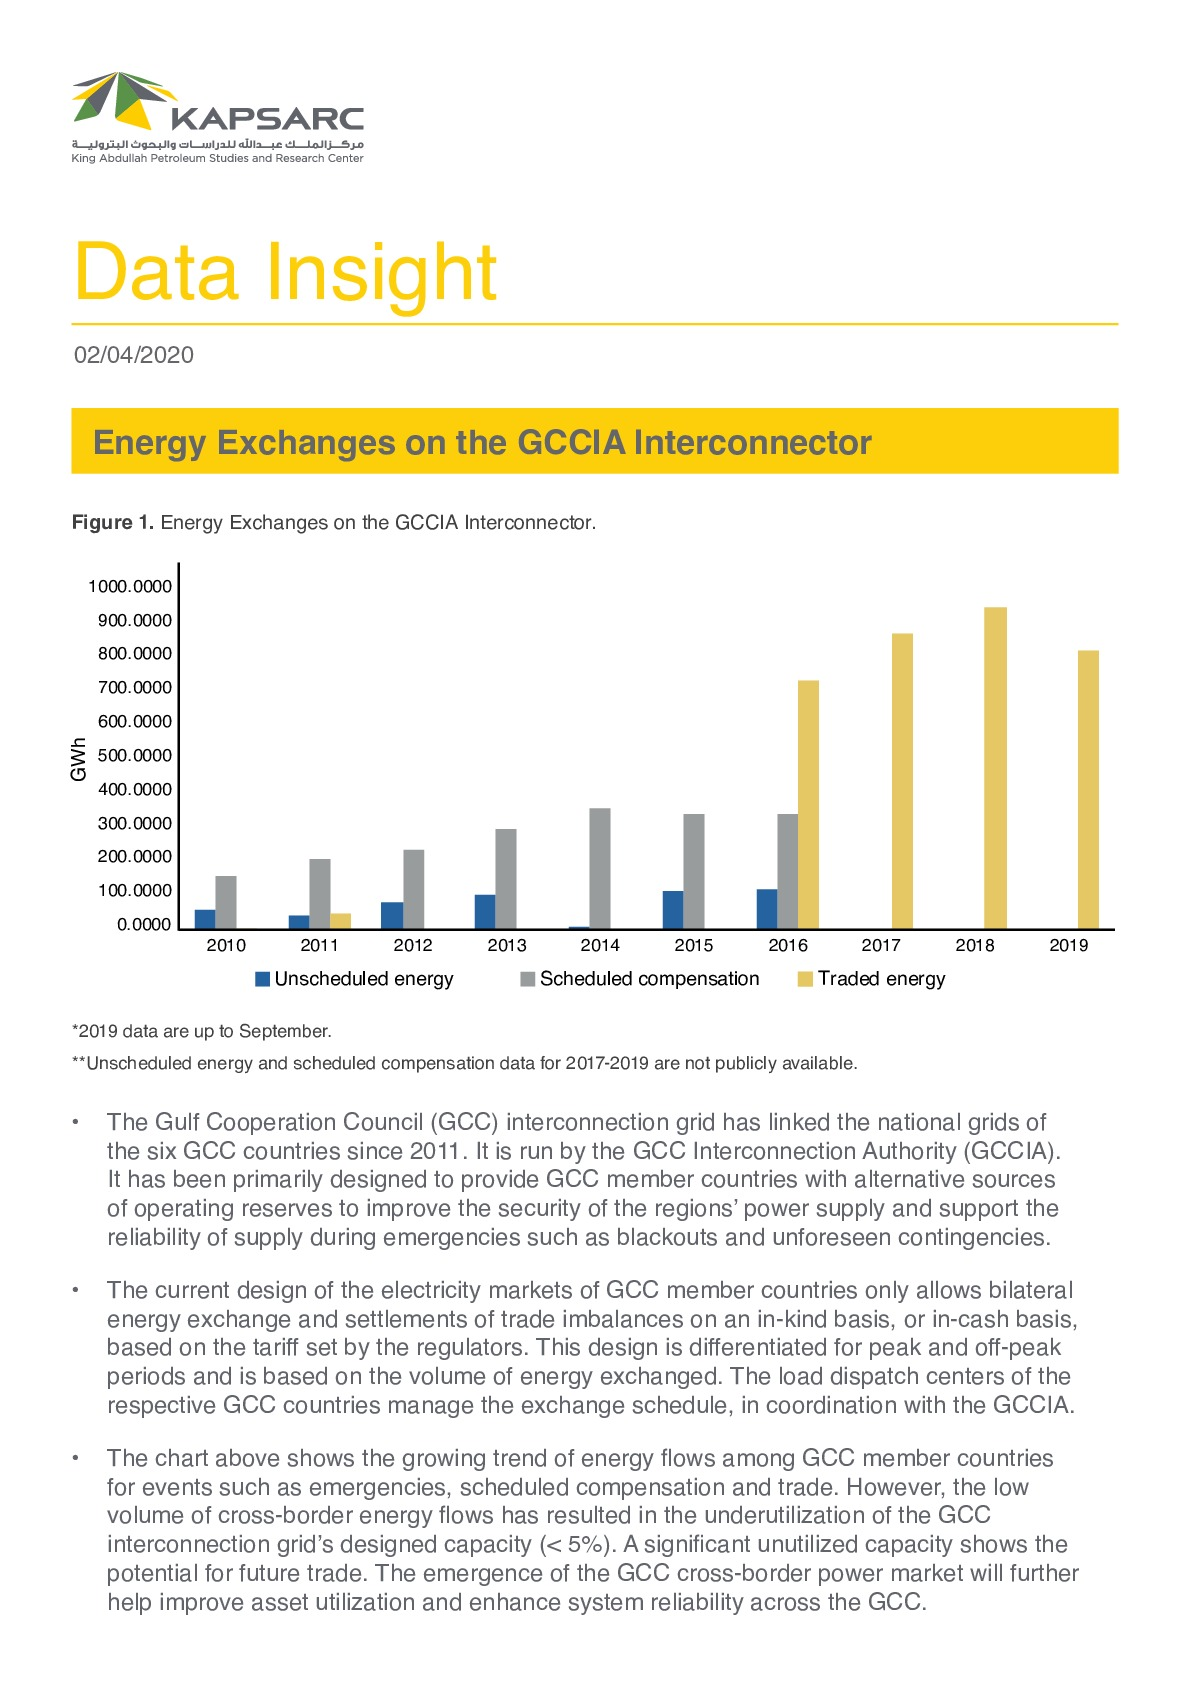 Energy Exchanges on GCCIA Interconnector